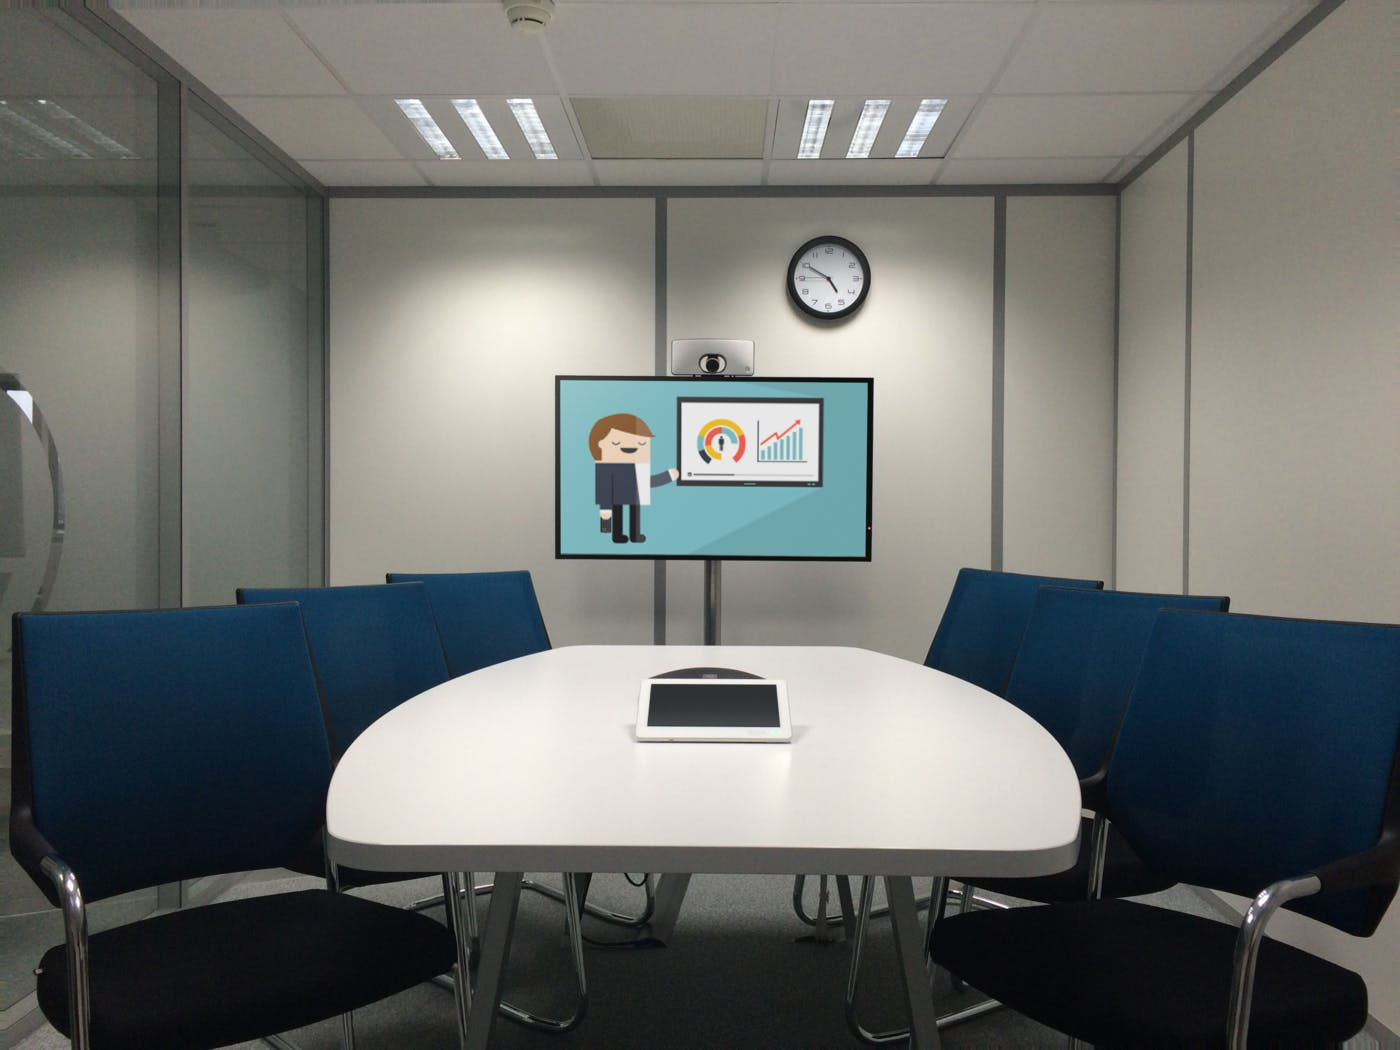 New Ways of Learning in the Workplace Using Screens